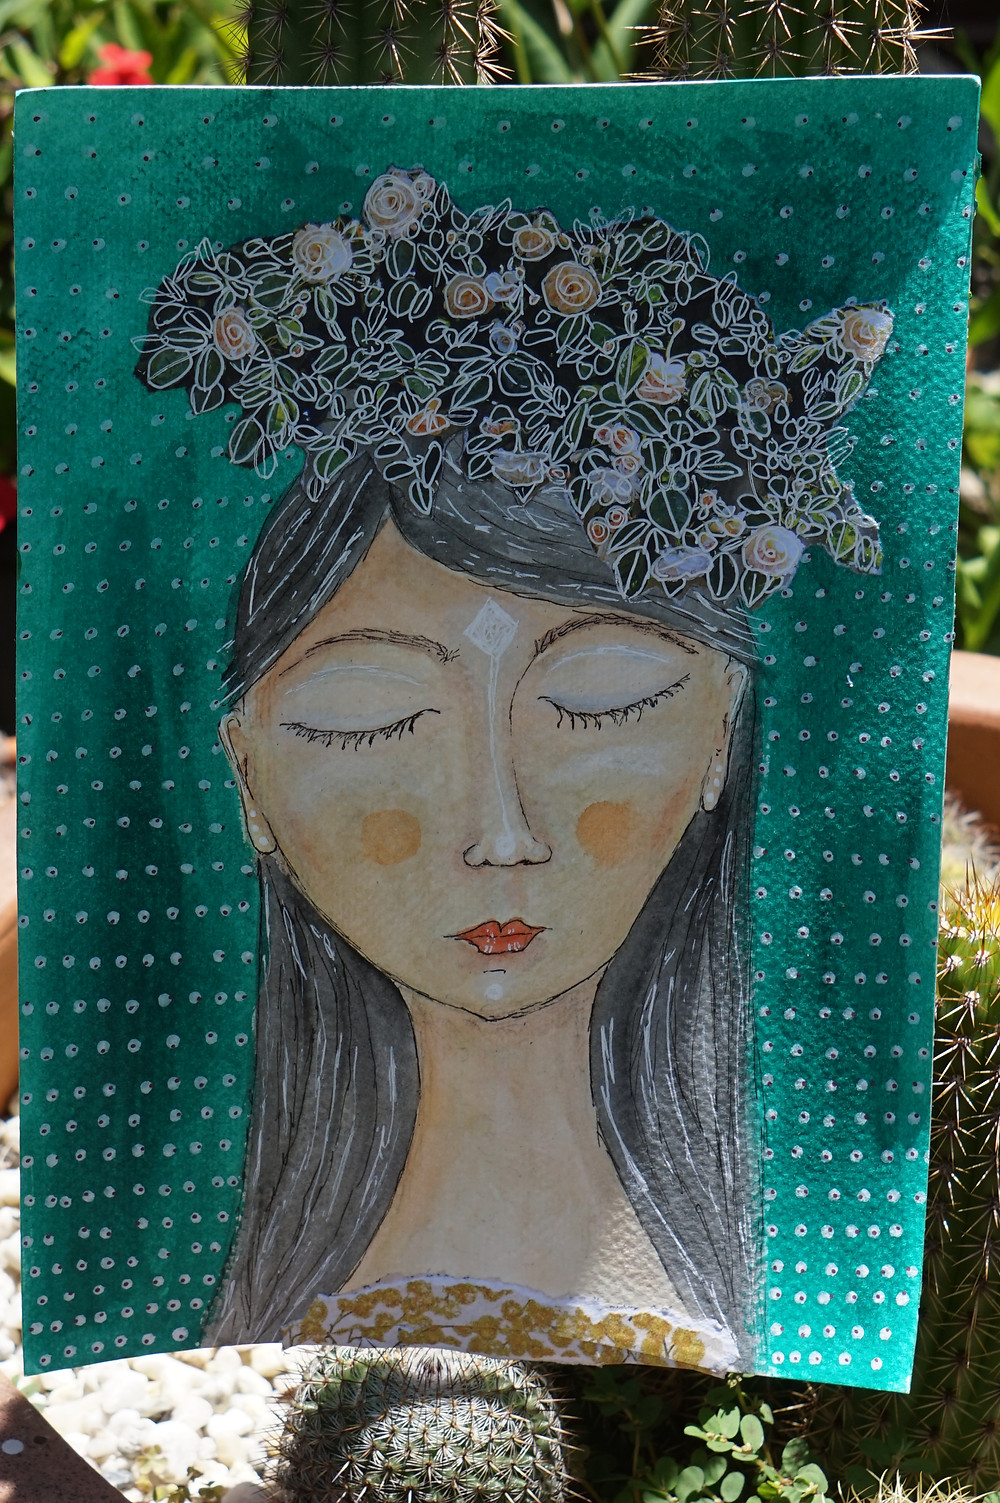 Pensive woman with flowers in her hair and a green background